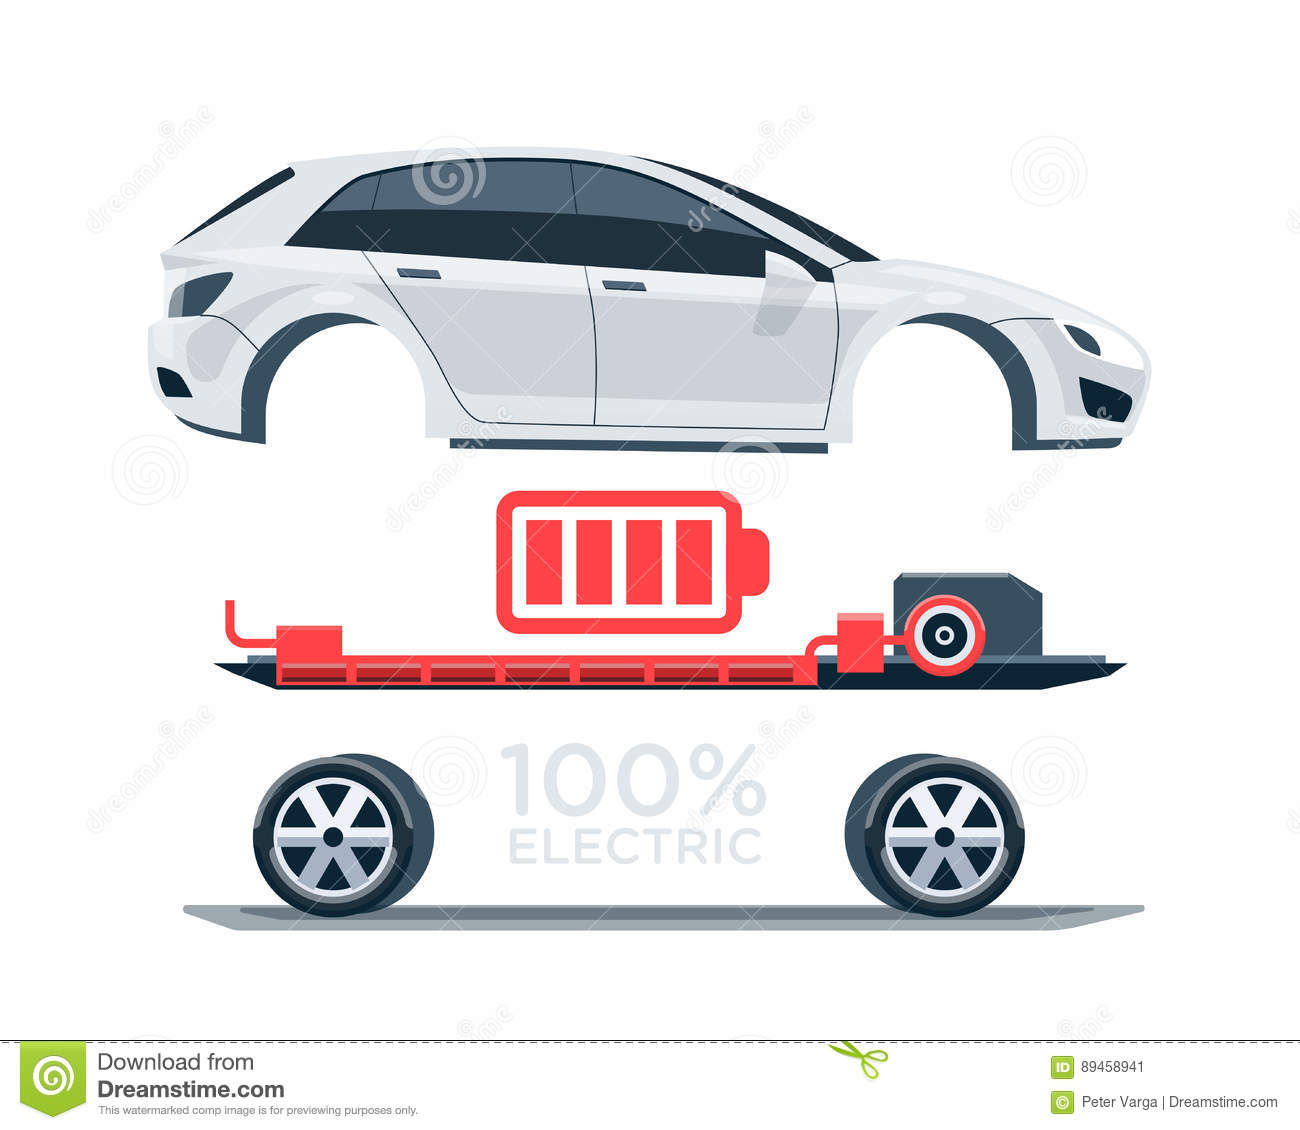 hight resolution of vector illustration scheme of an electric car charging at the charger station showing electrical components like battery pack motor charger controller